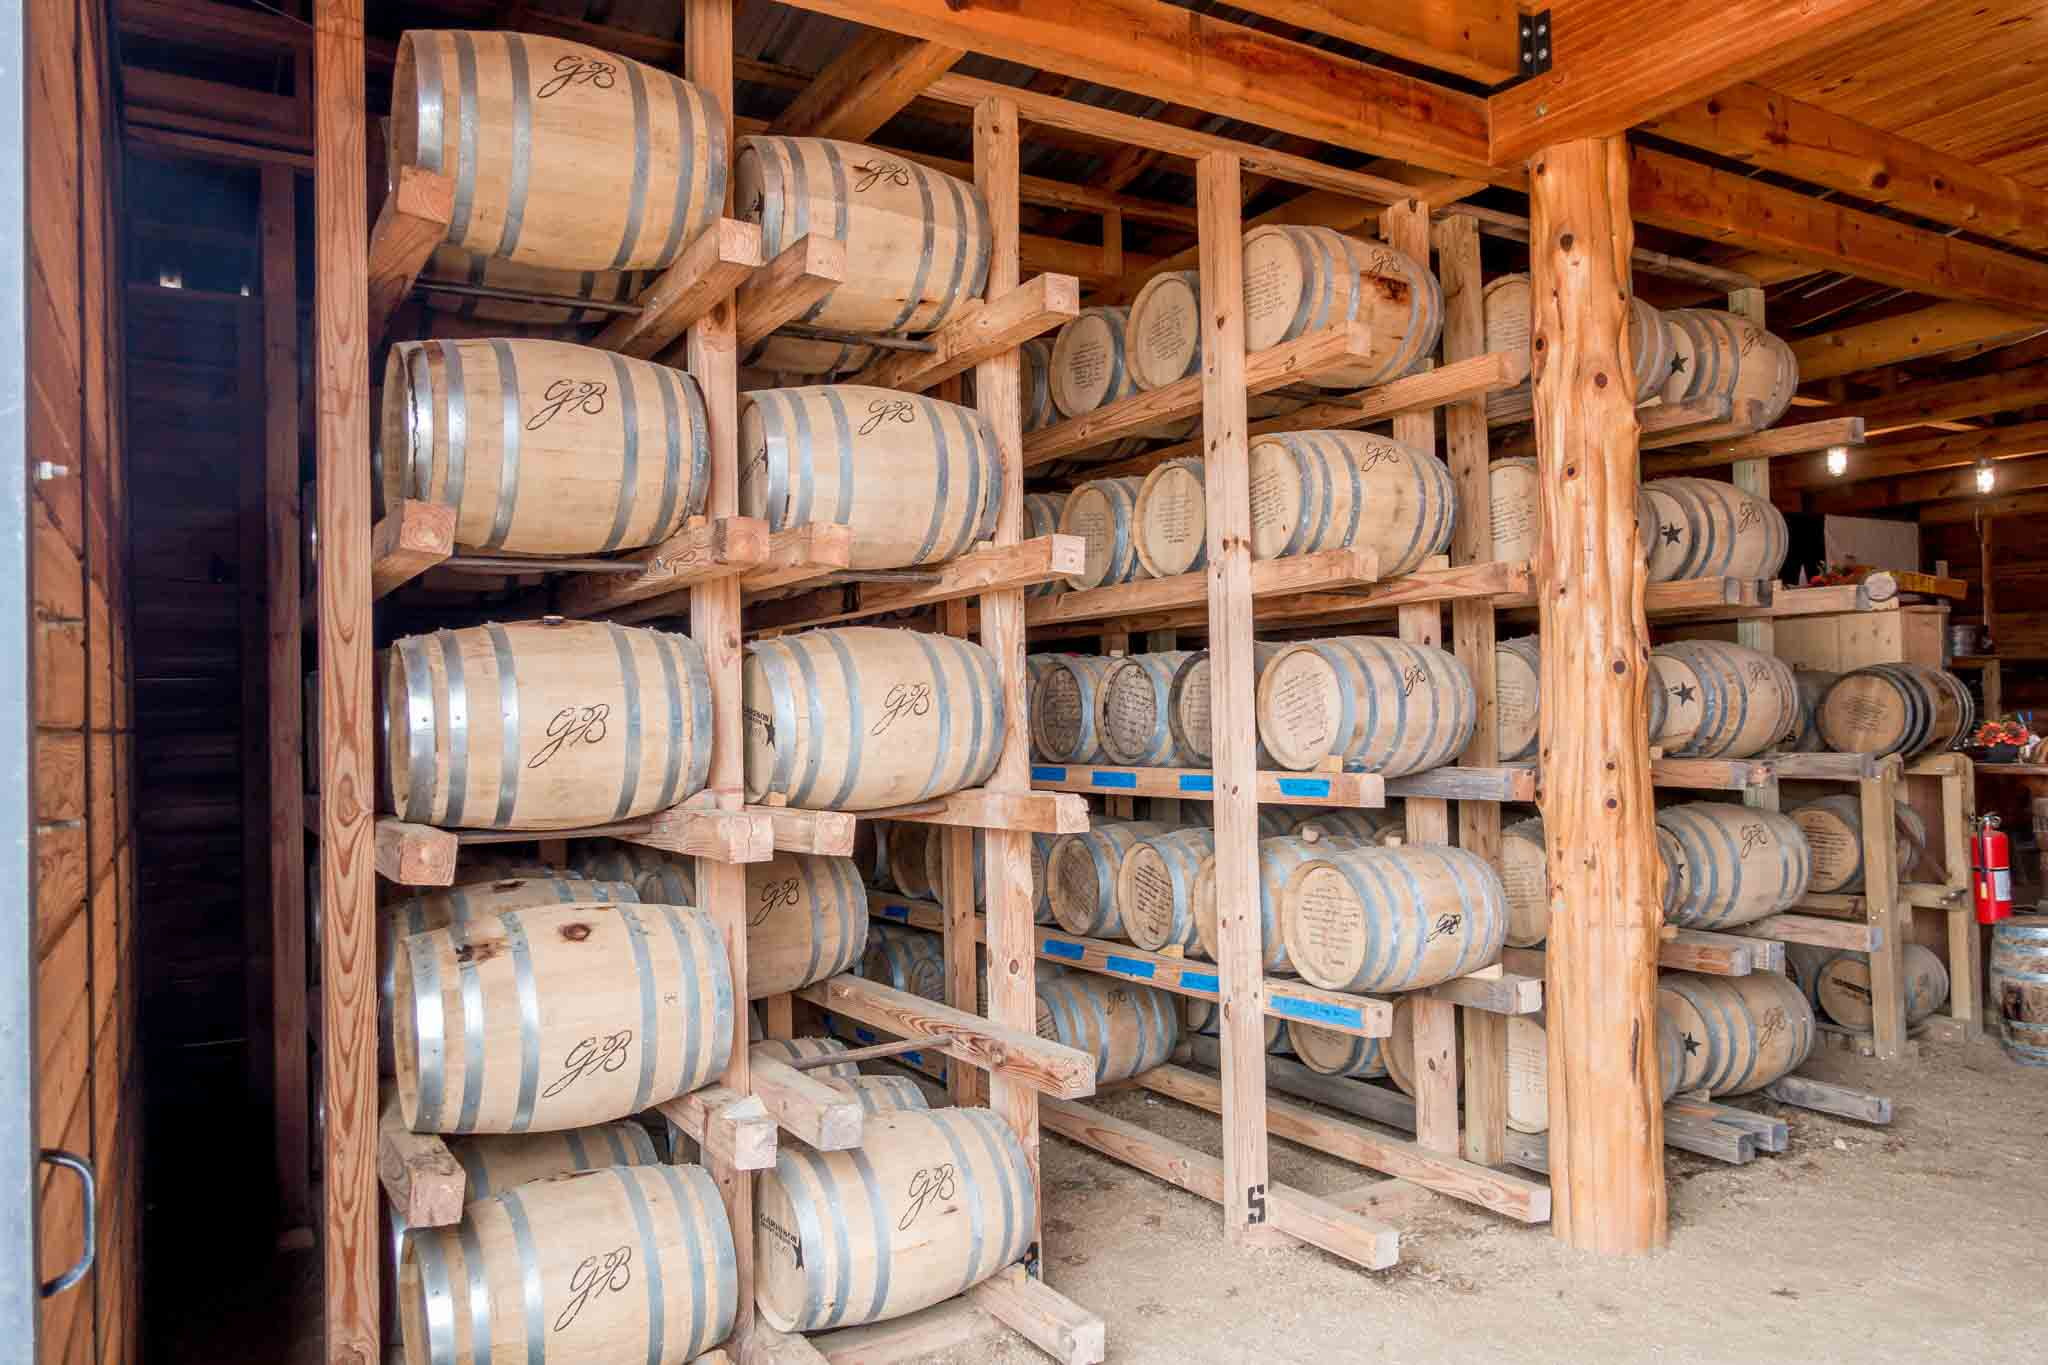 Barrels of Texas bourbon aging at Garrison Brothers, one of the Texas distilleries